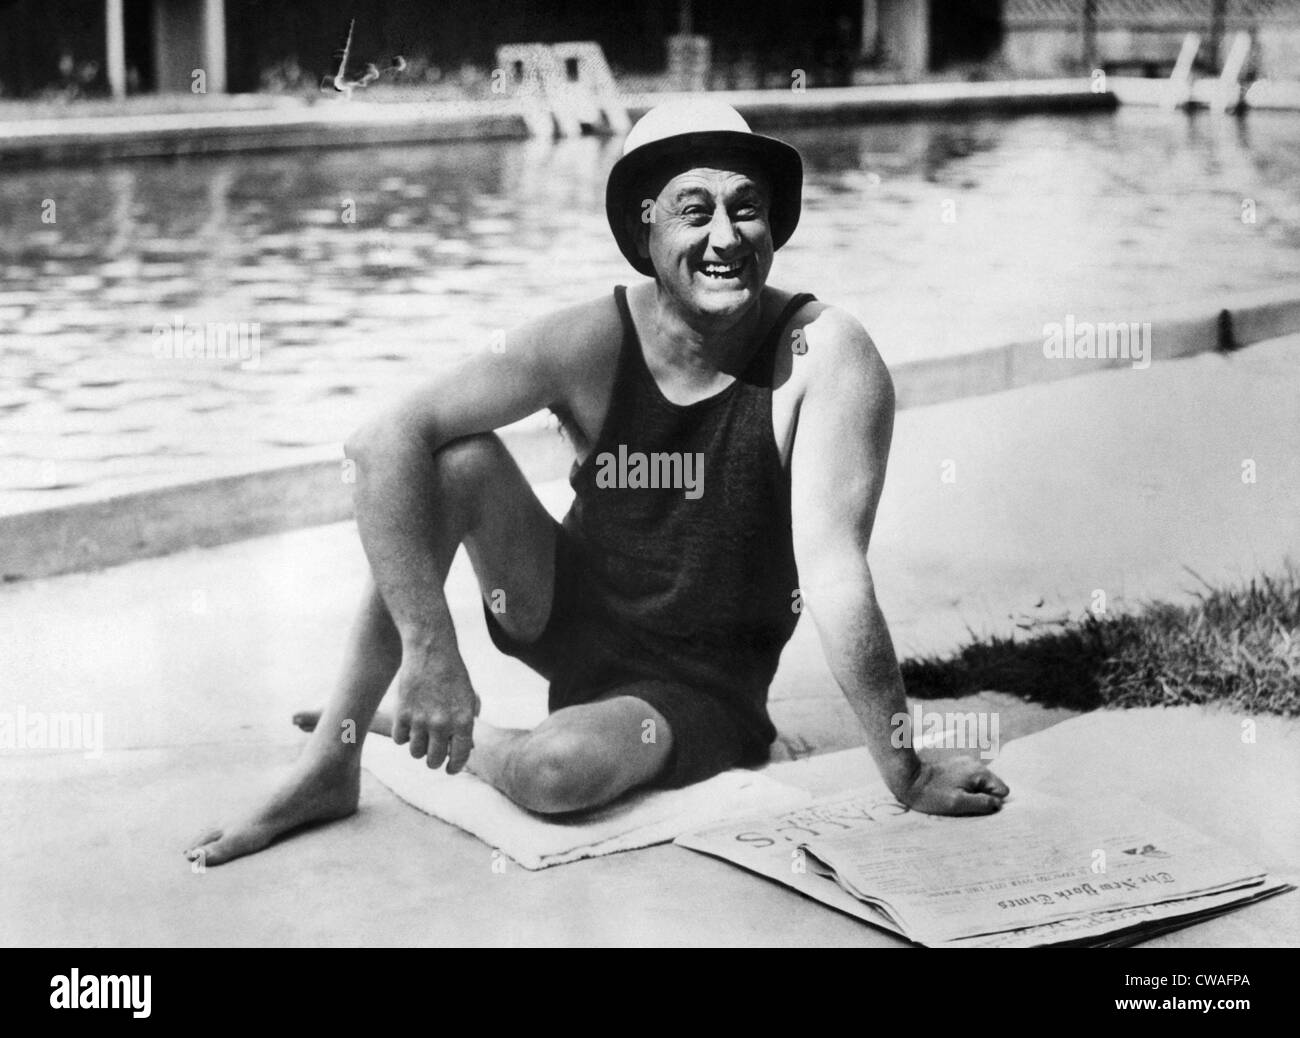 Governor (and future U.S. President), Franklin D. Roosevelt (1882-1945), poolside at his home in Warm Springs, Georgia, - Stock Image